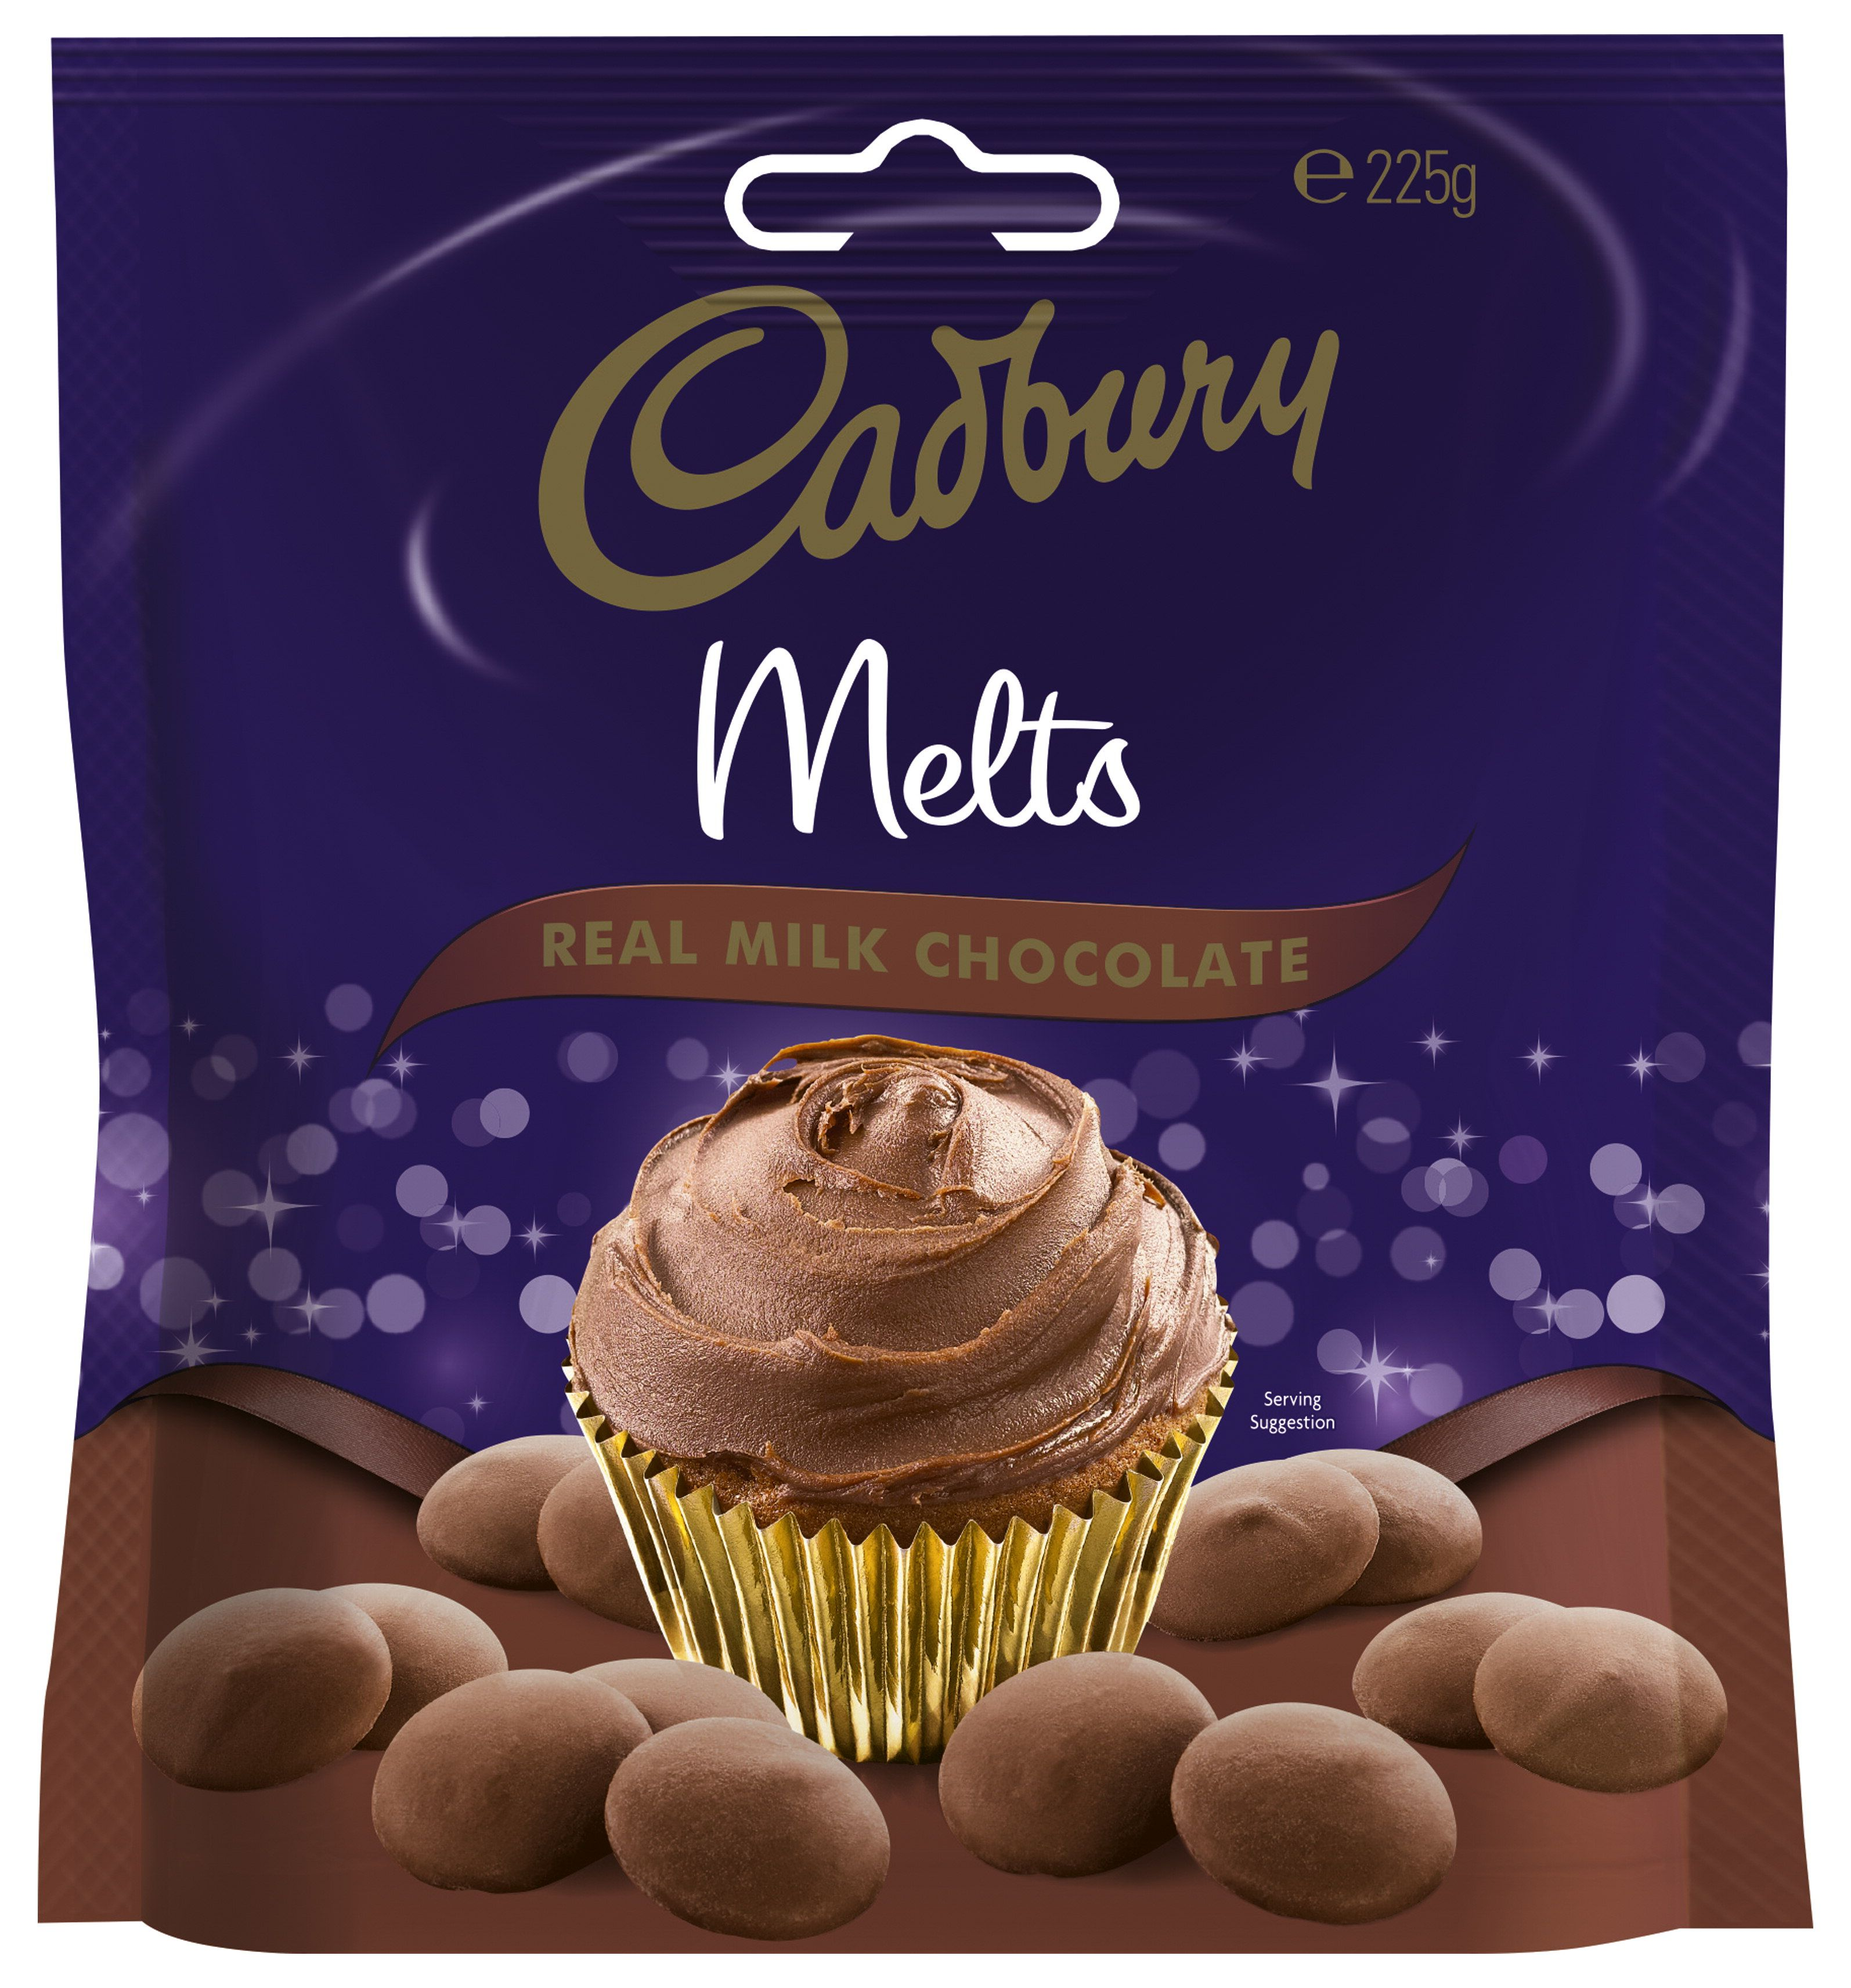 Cadbury's range of Melts are perfect as inclusions in #cakes ...